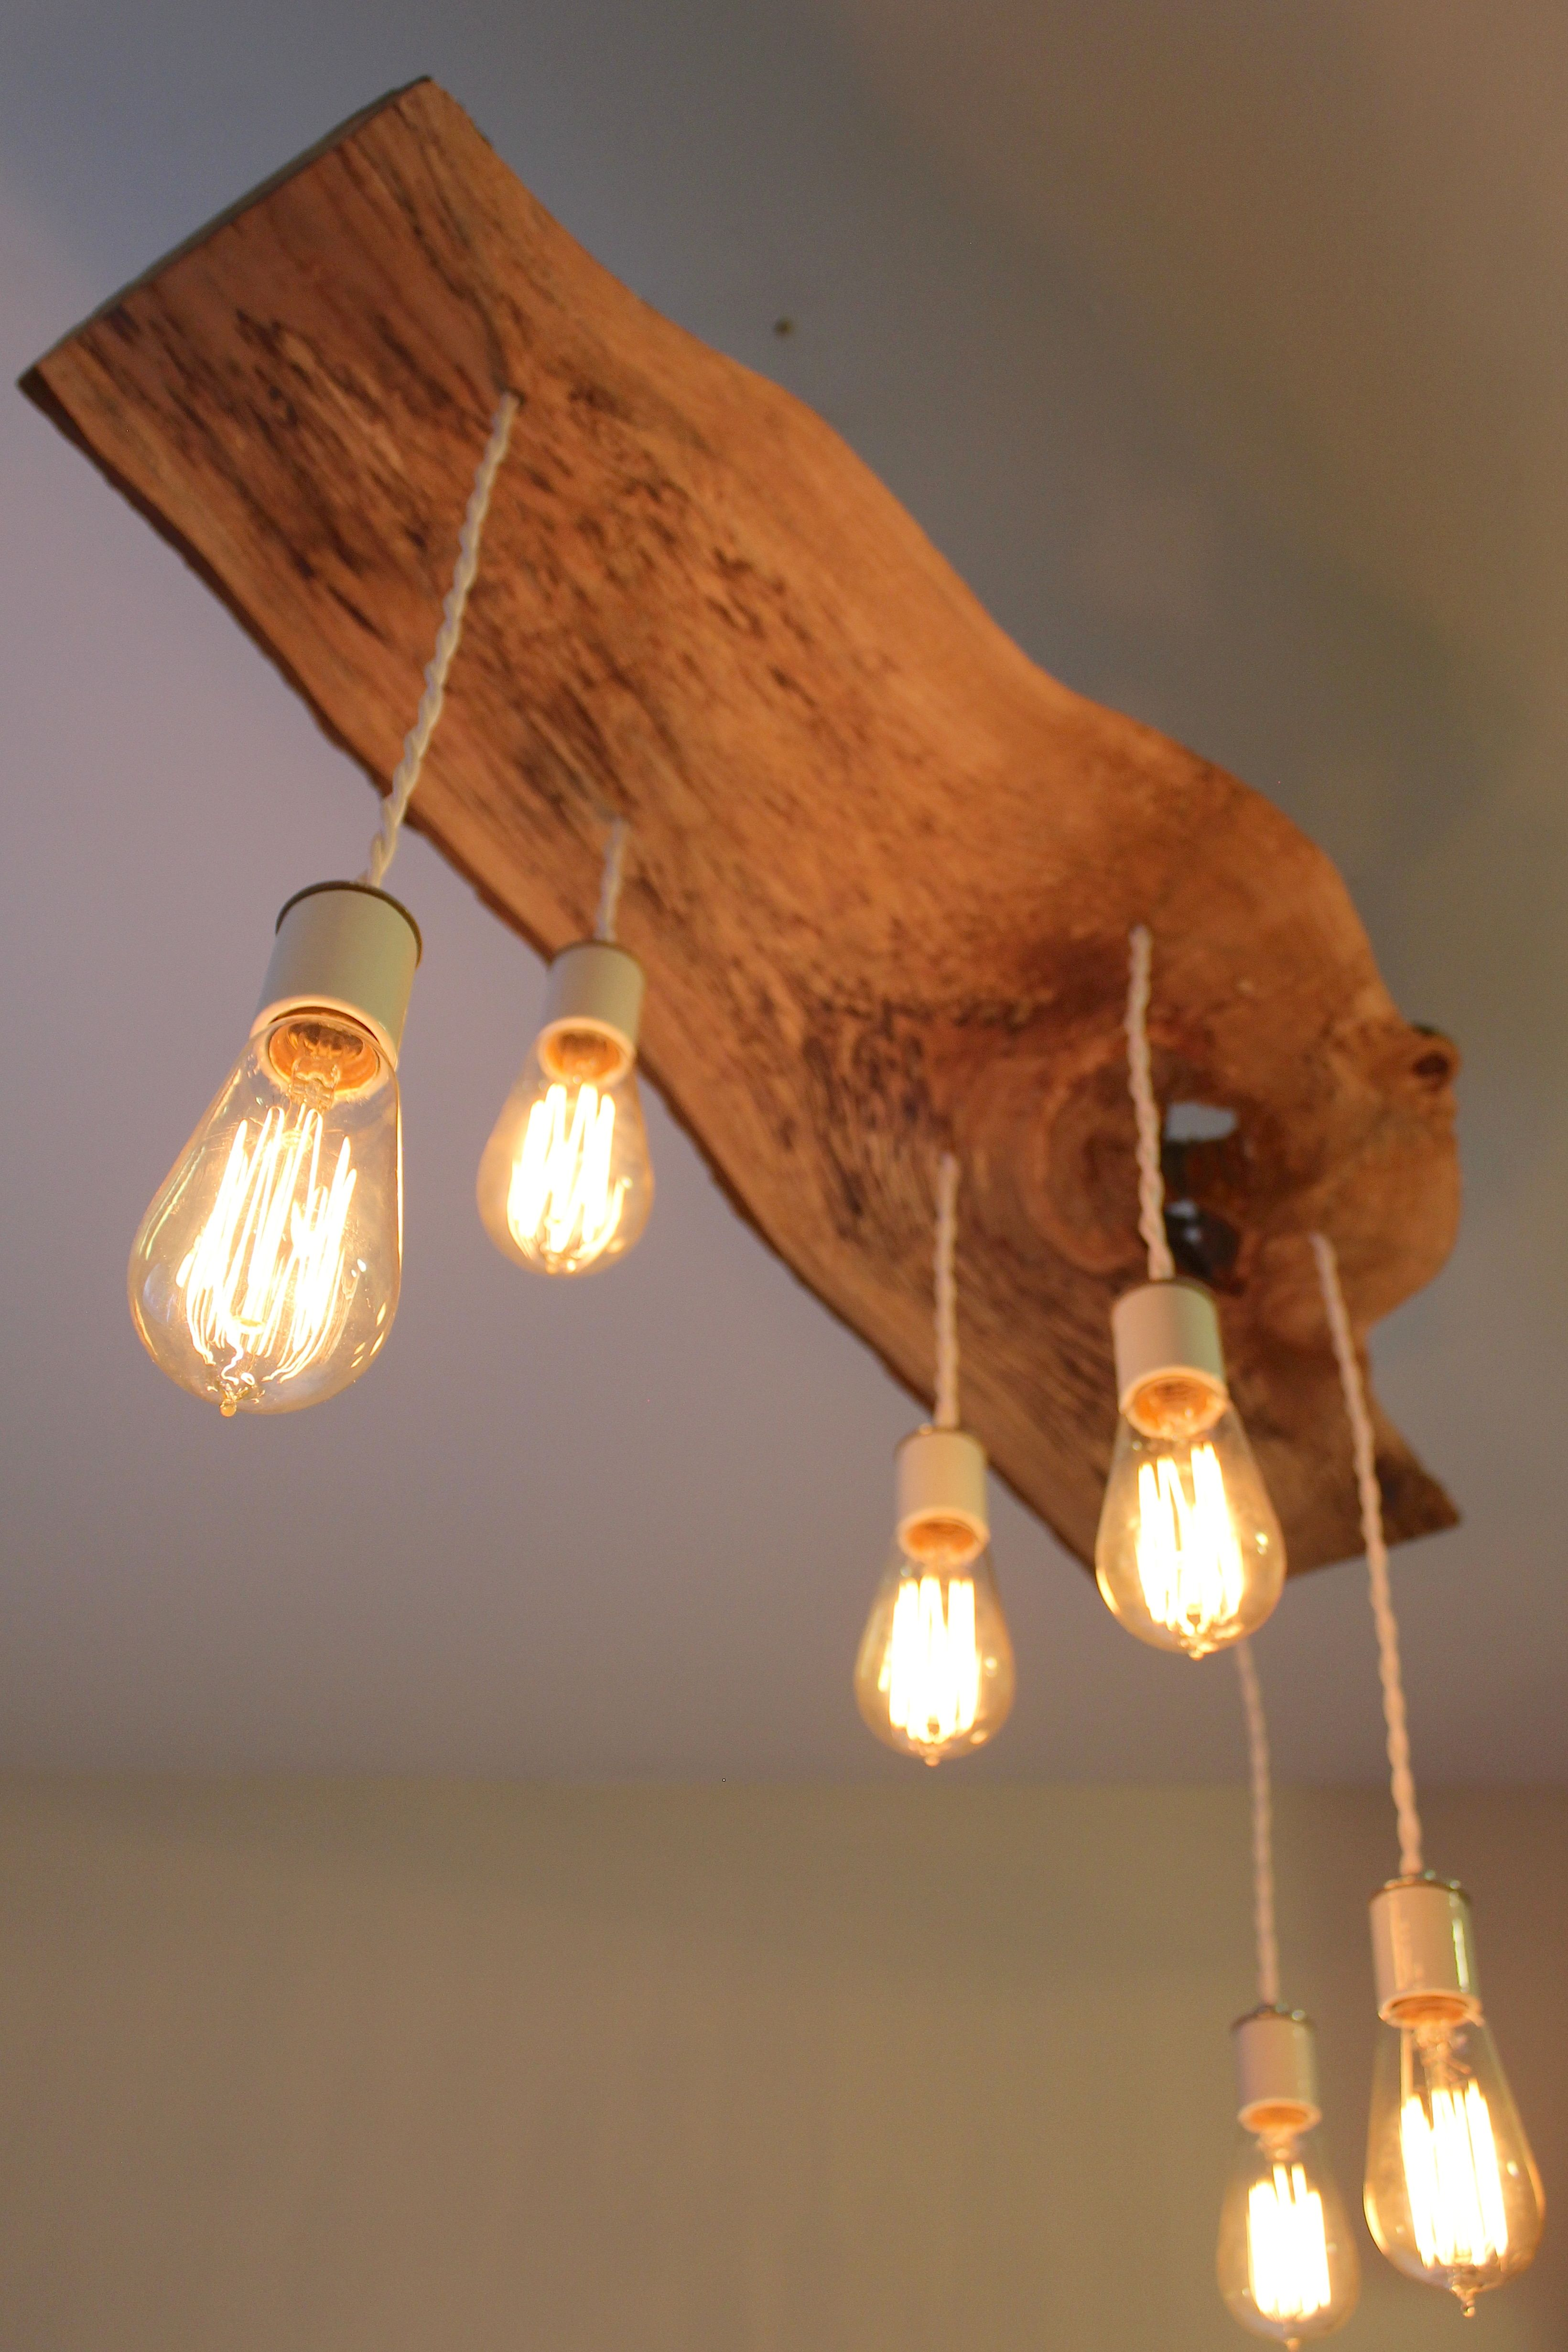 Wonderful Reclaimed And Extreme Live Edge Spalted Maple Wood Light Fixture With  Hangingu2026